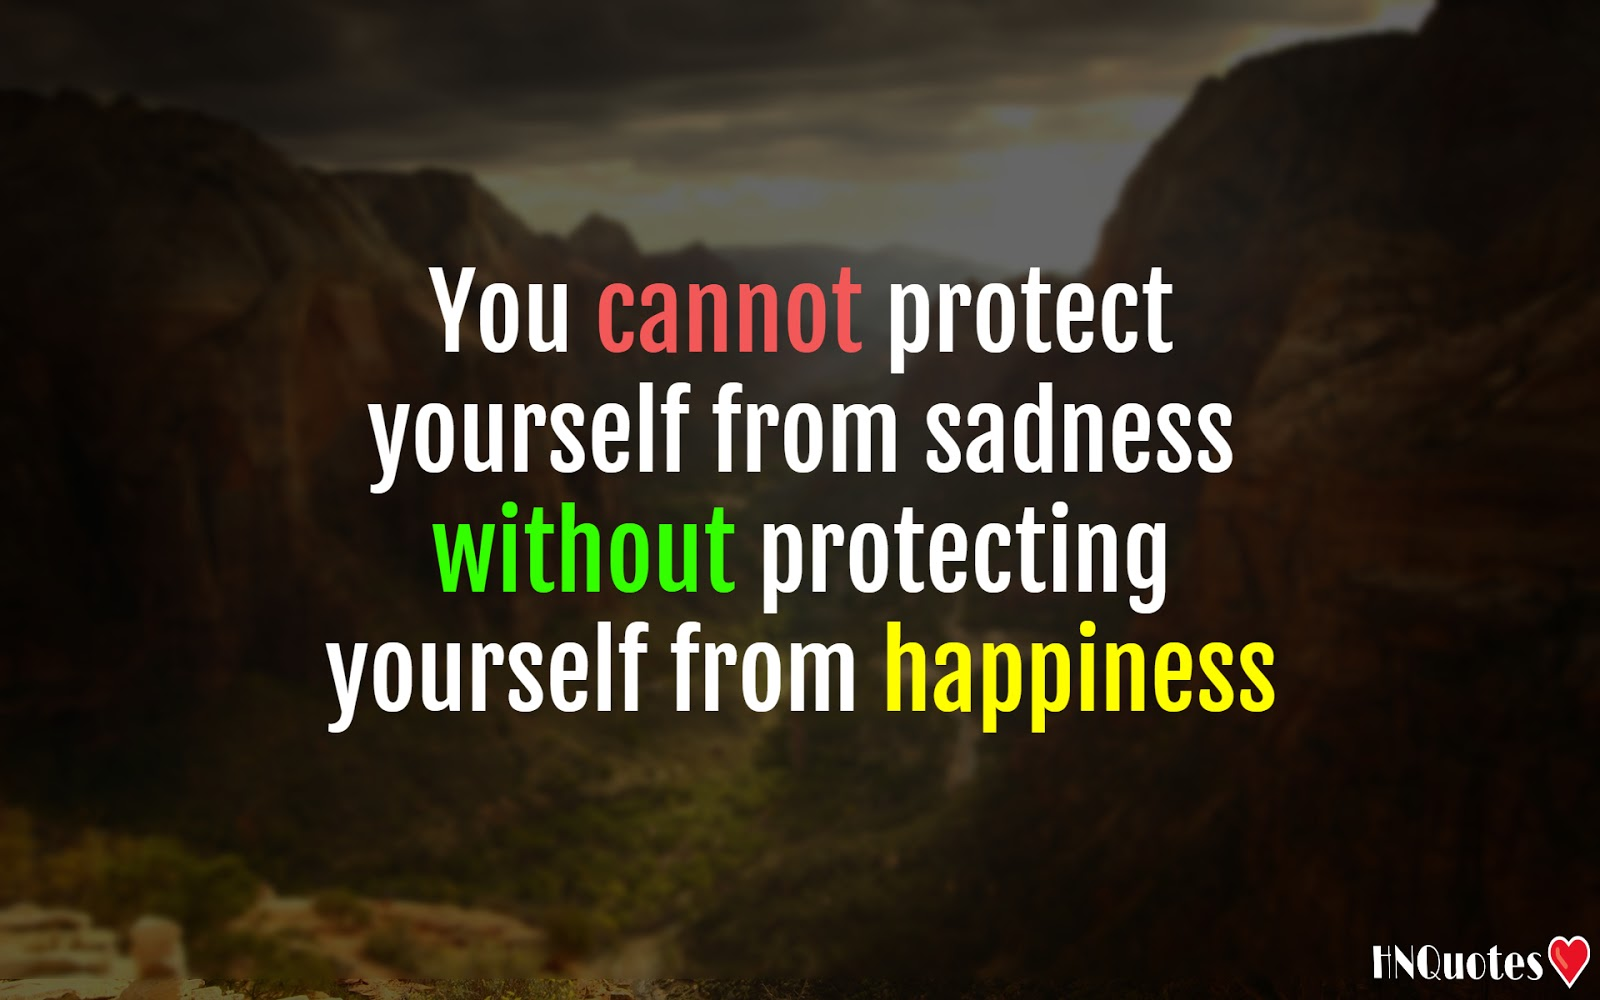 Sad-&-Emotional-Quotes-on-Life-81-Best-Emotional-Quotes[HNQuotes]